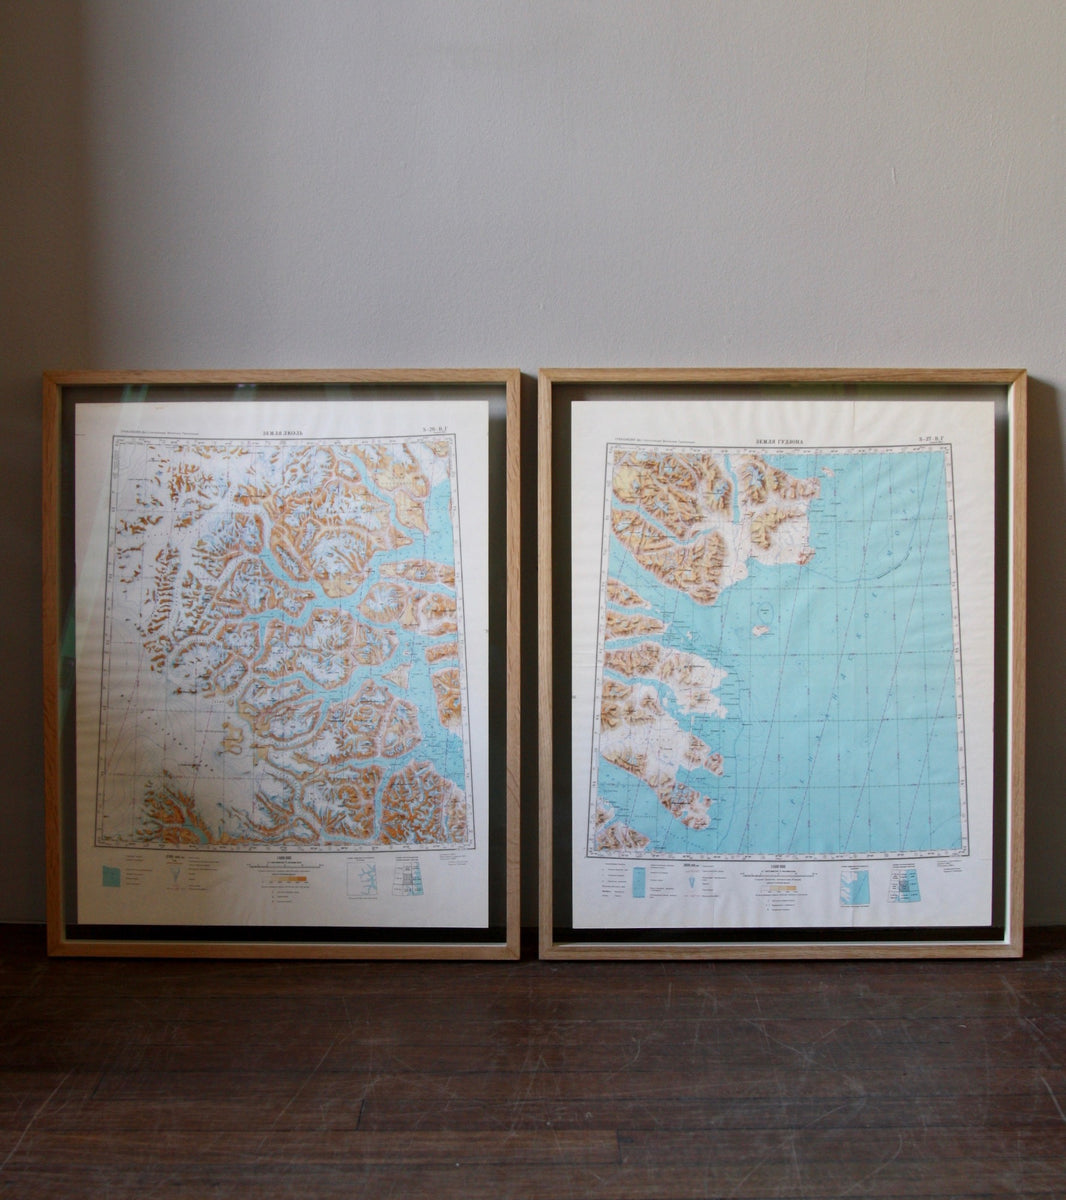 1960s Soviet Maps of Greenland - Image 12